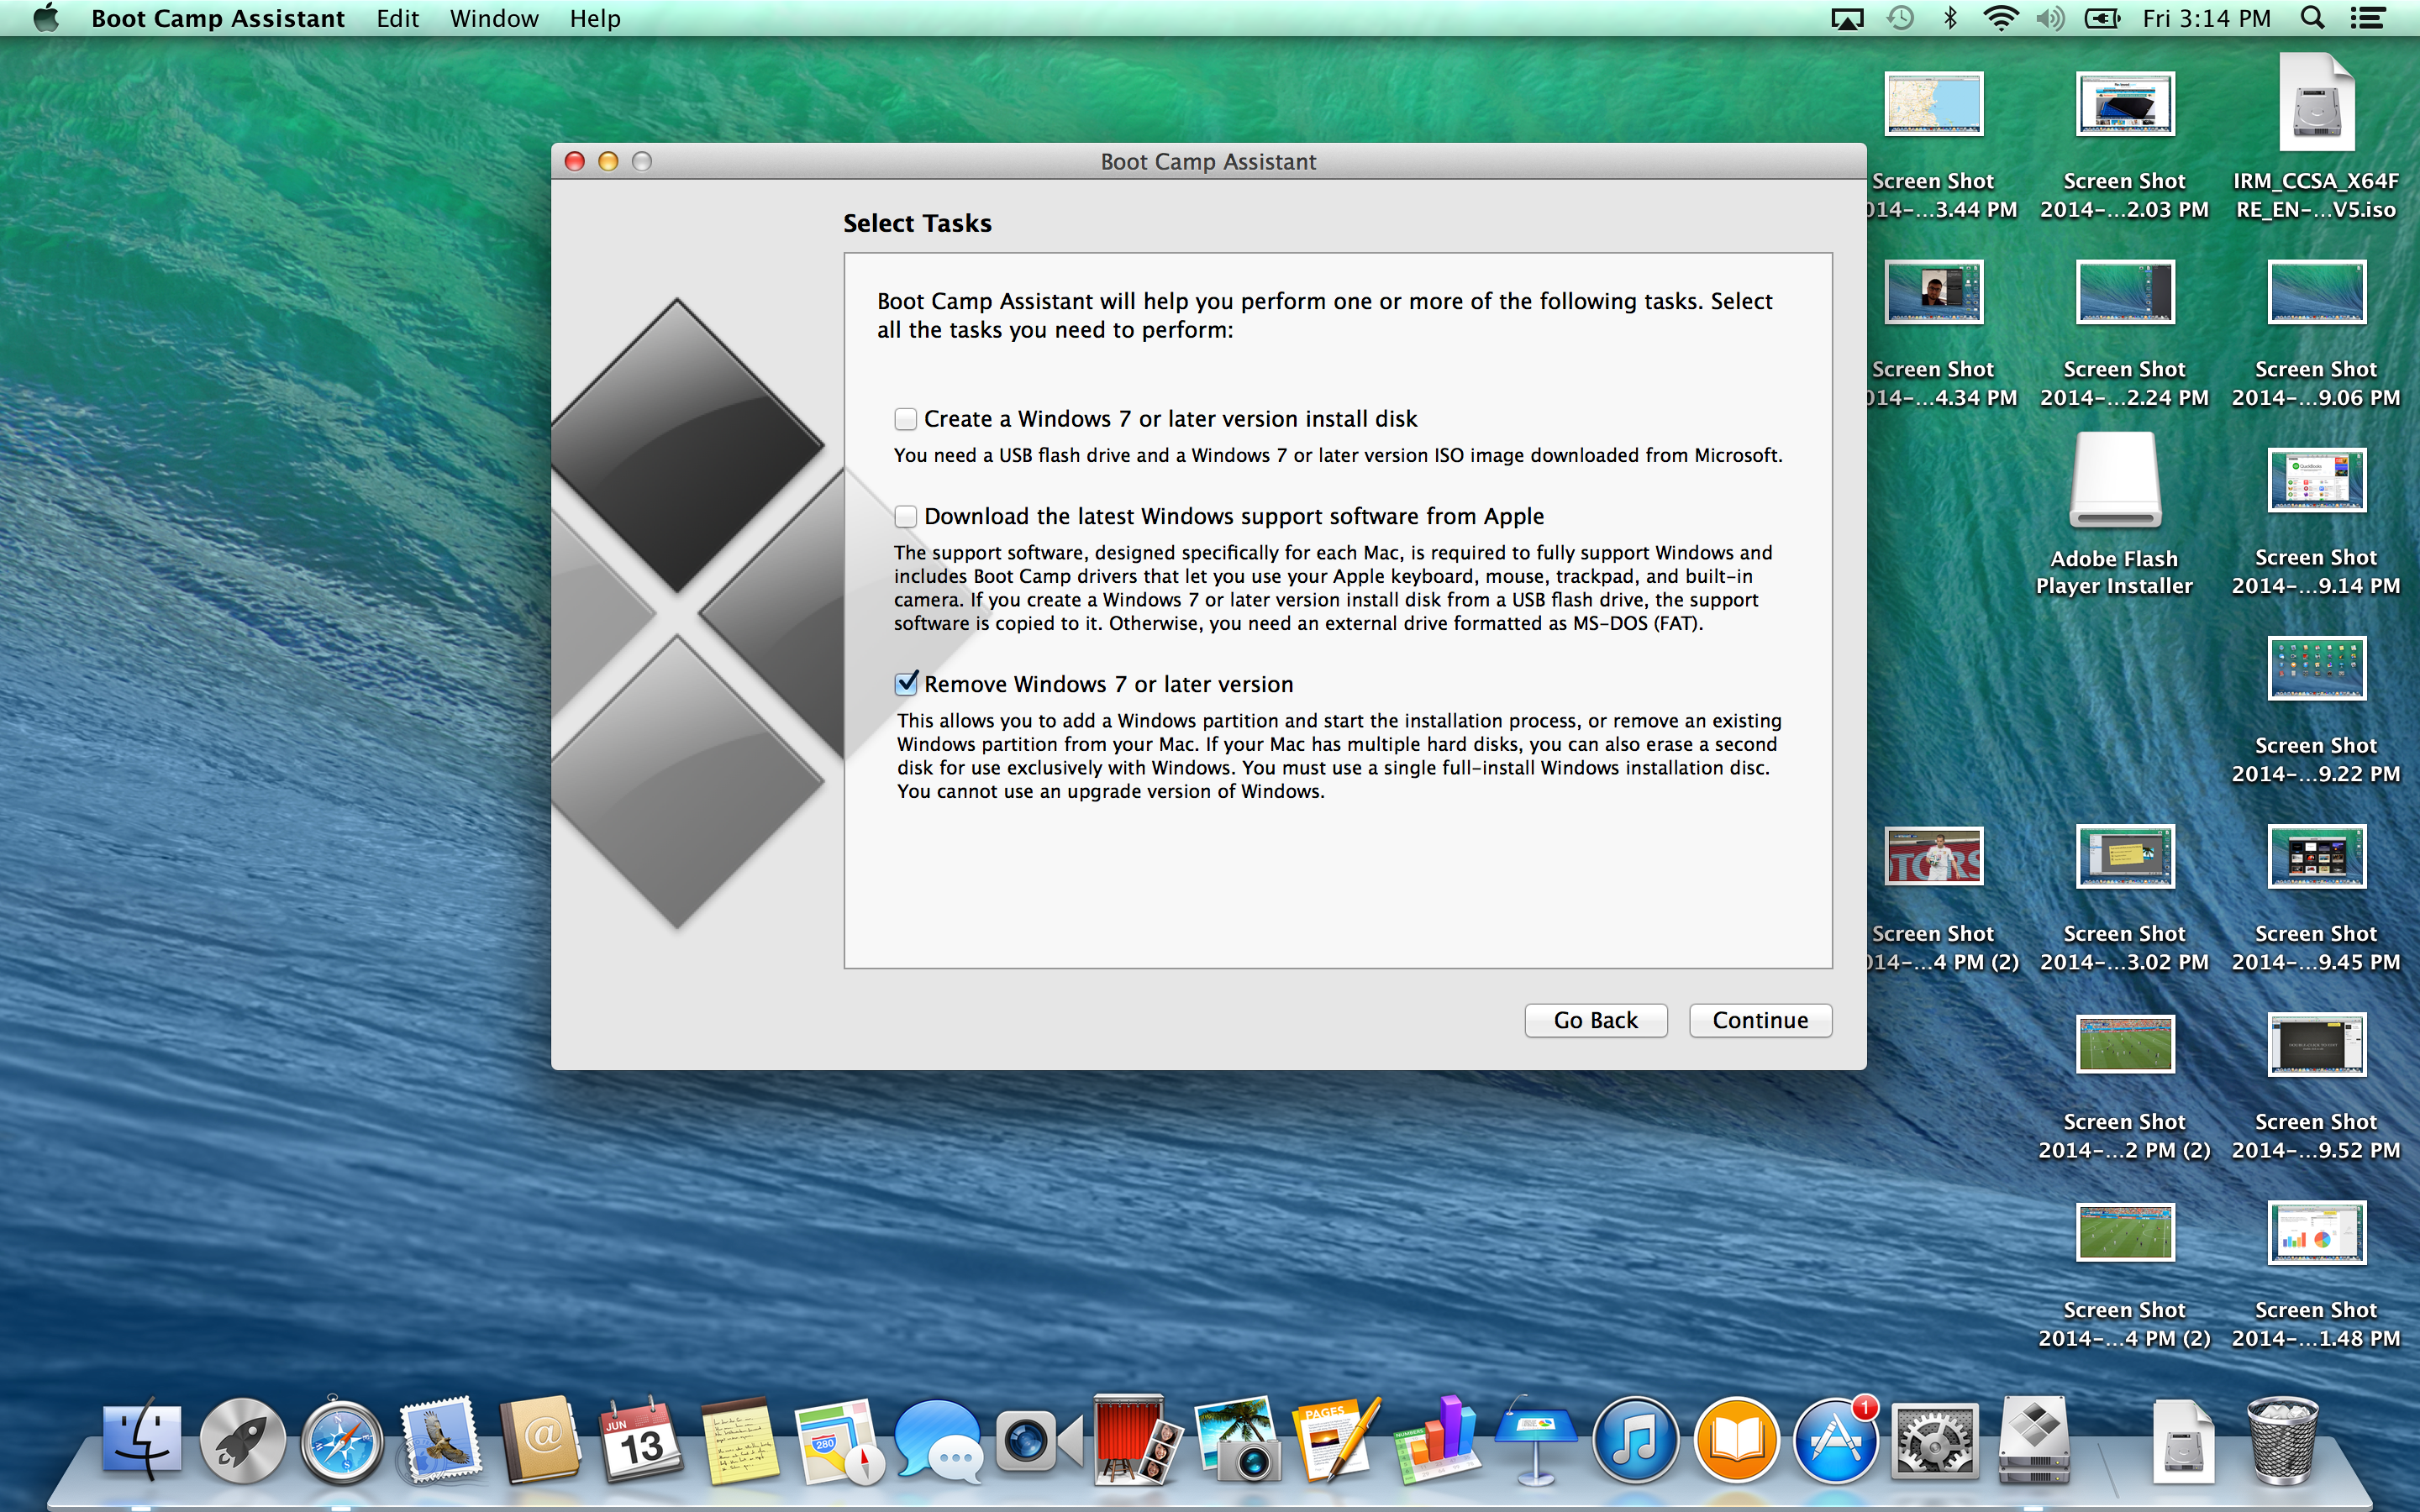 A screenshot of the Apple MacBook Pro with Retina Display's BootCamp software.